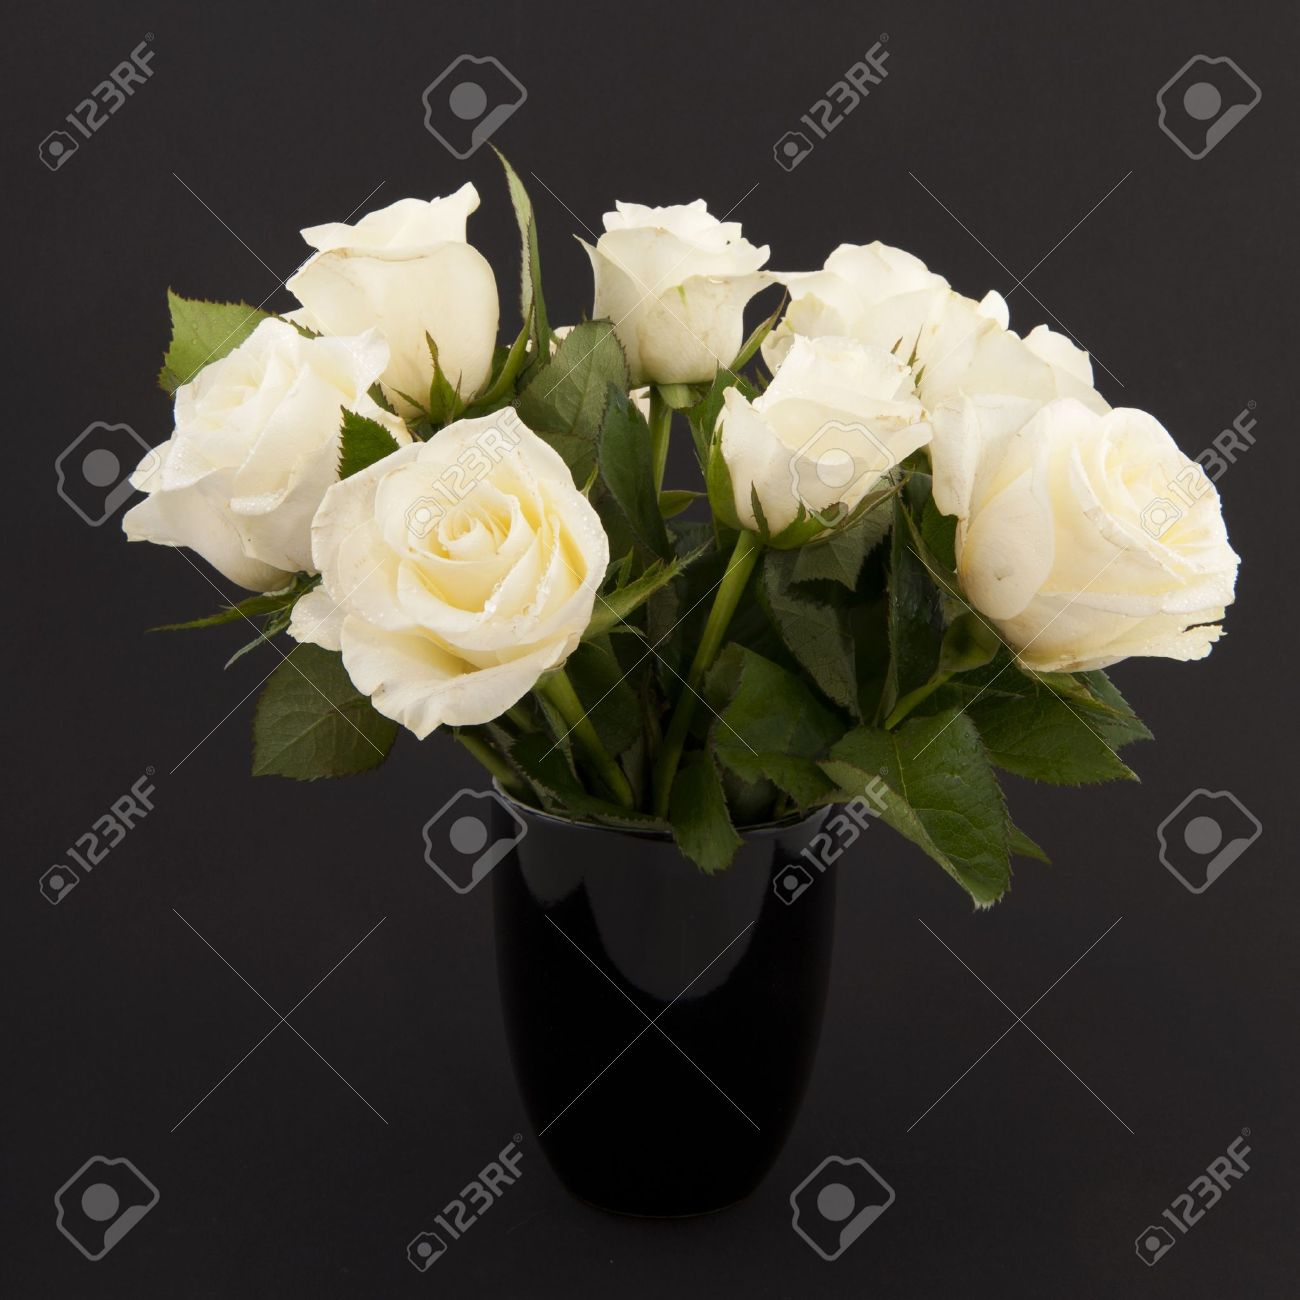 Vase white roses for a funeral isolated on black stock photo stock photo vase white roses for a funeral isolated on black mightylinksfo